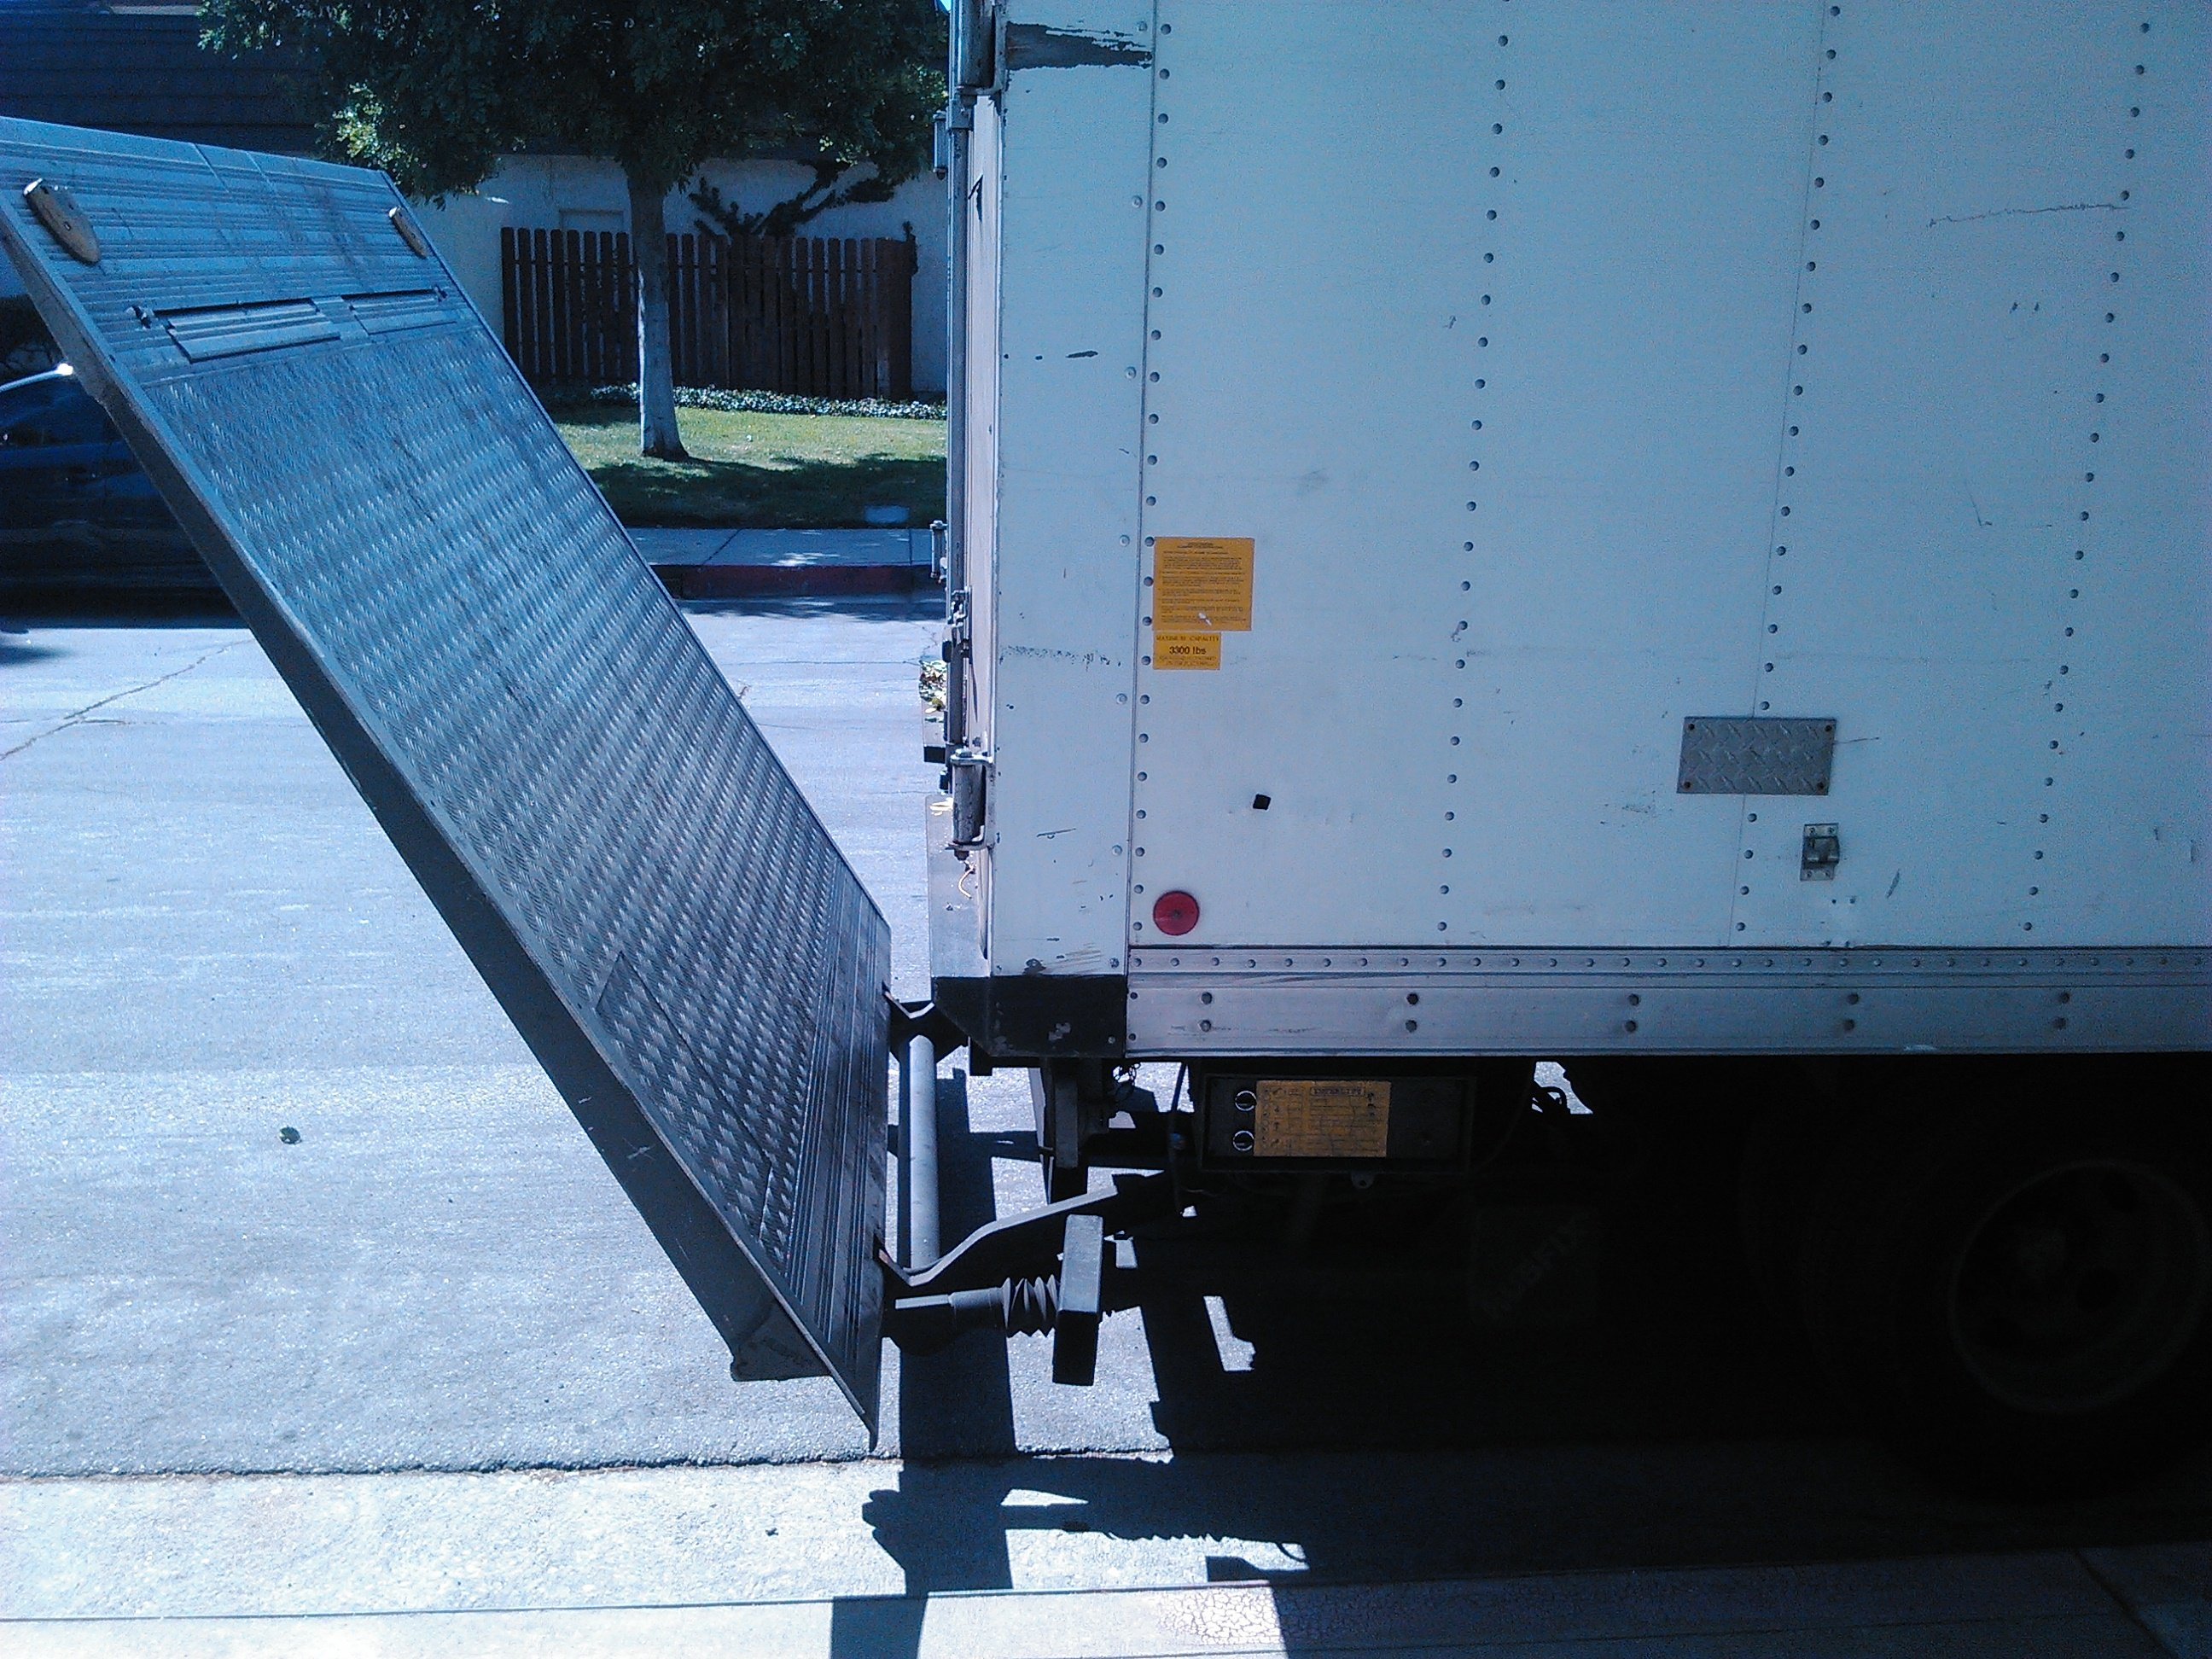 Eagle Lift Gate Wiring Diagram Peterson Trailer Lights Wiringdiagram – Leyman Liftgate Wiring Diagram